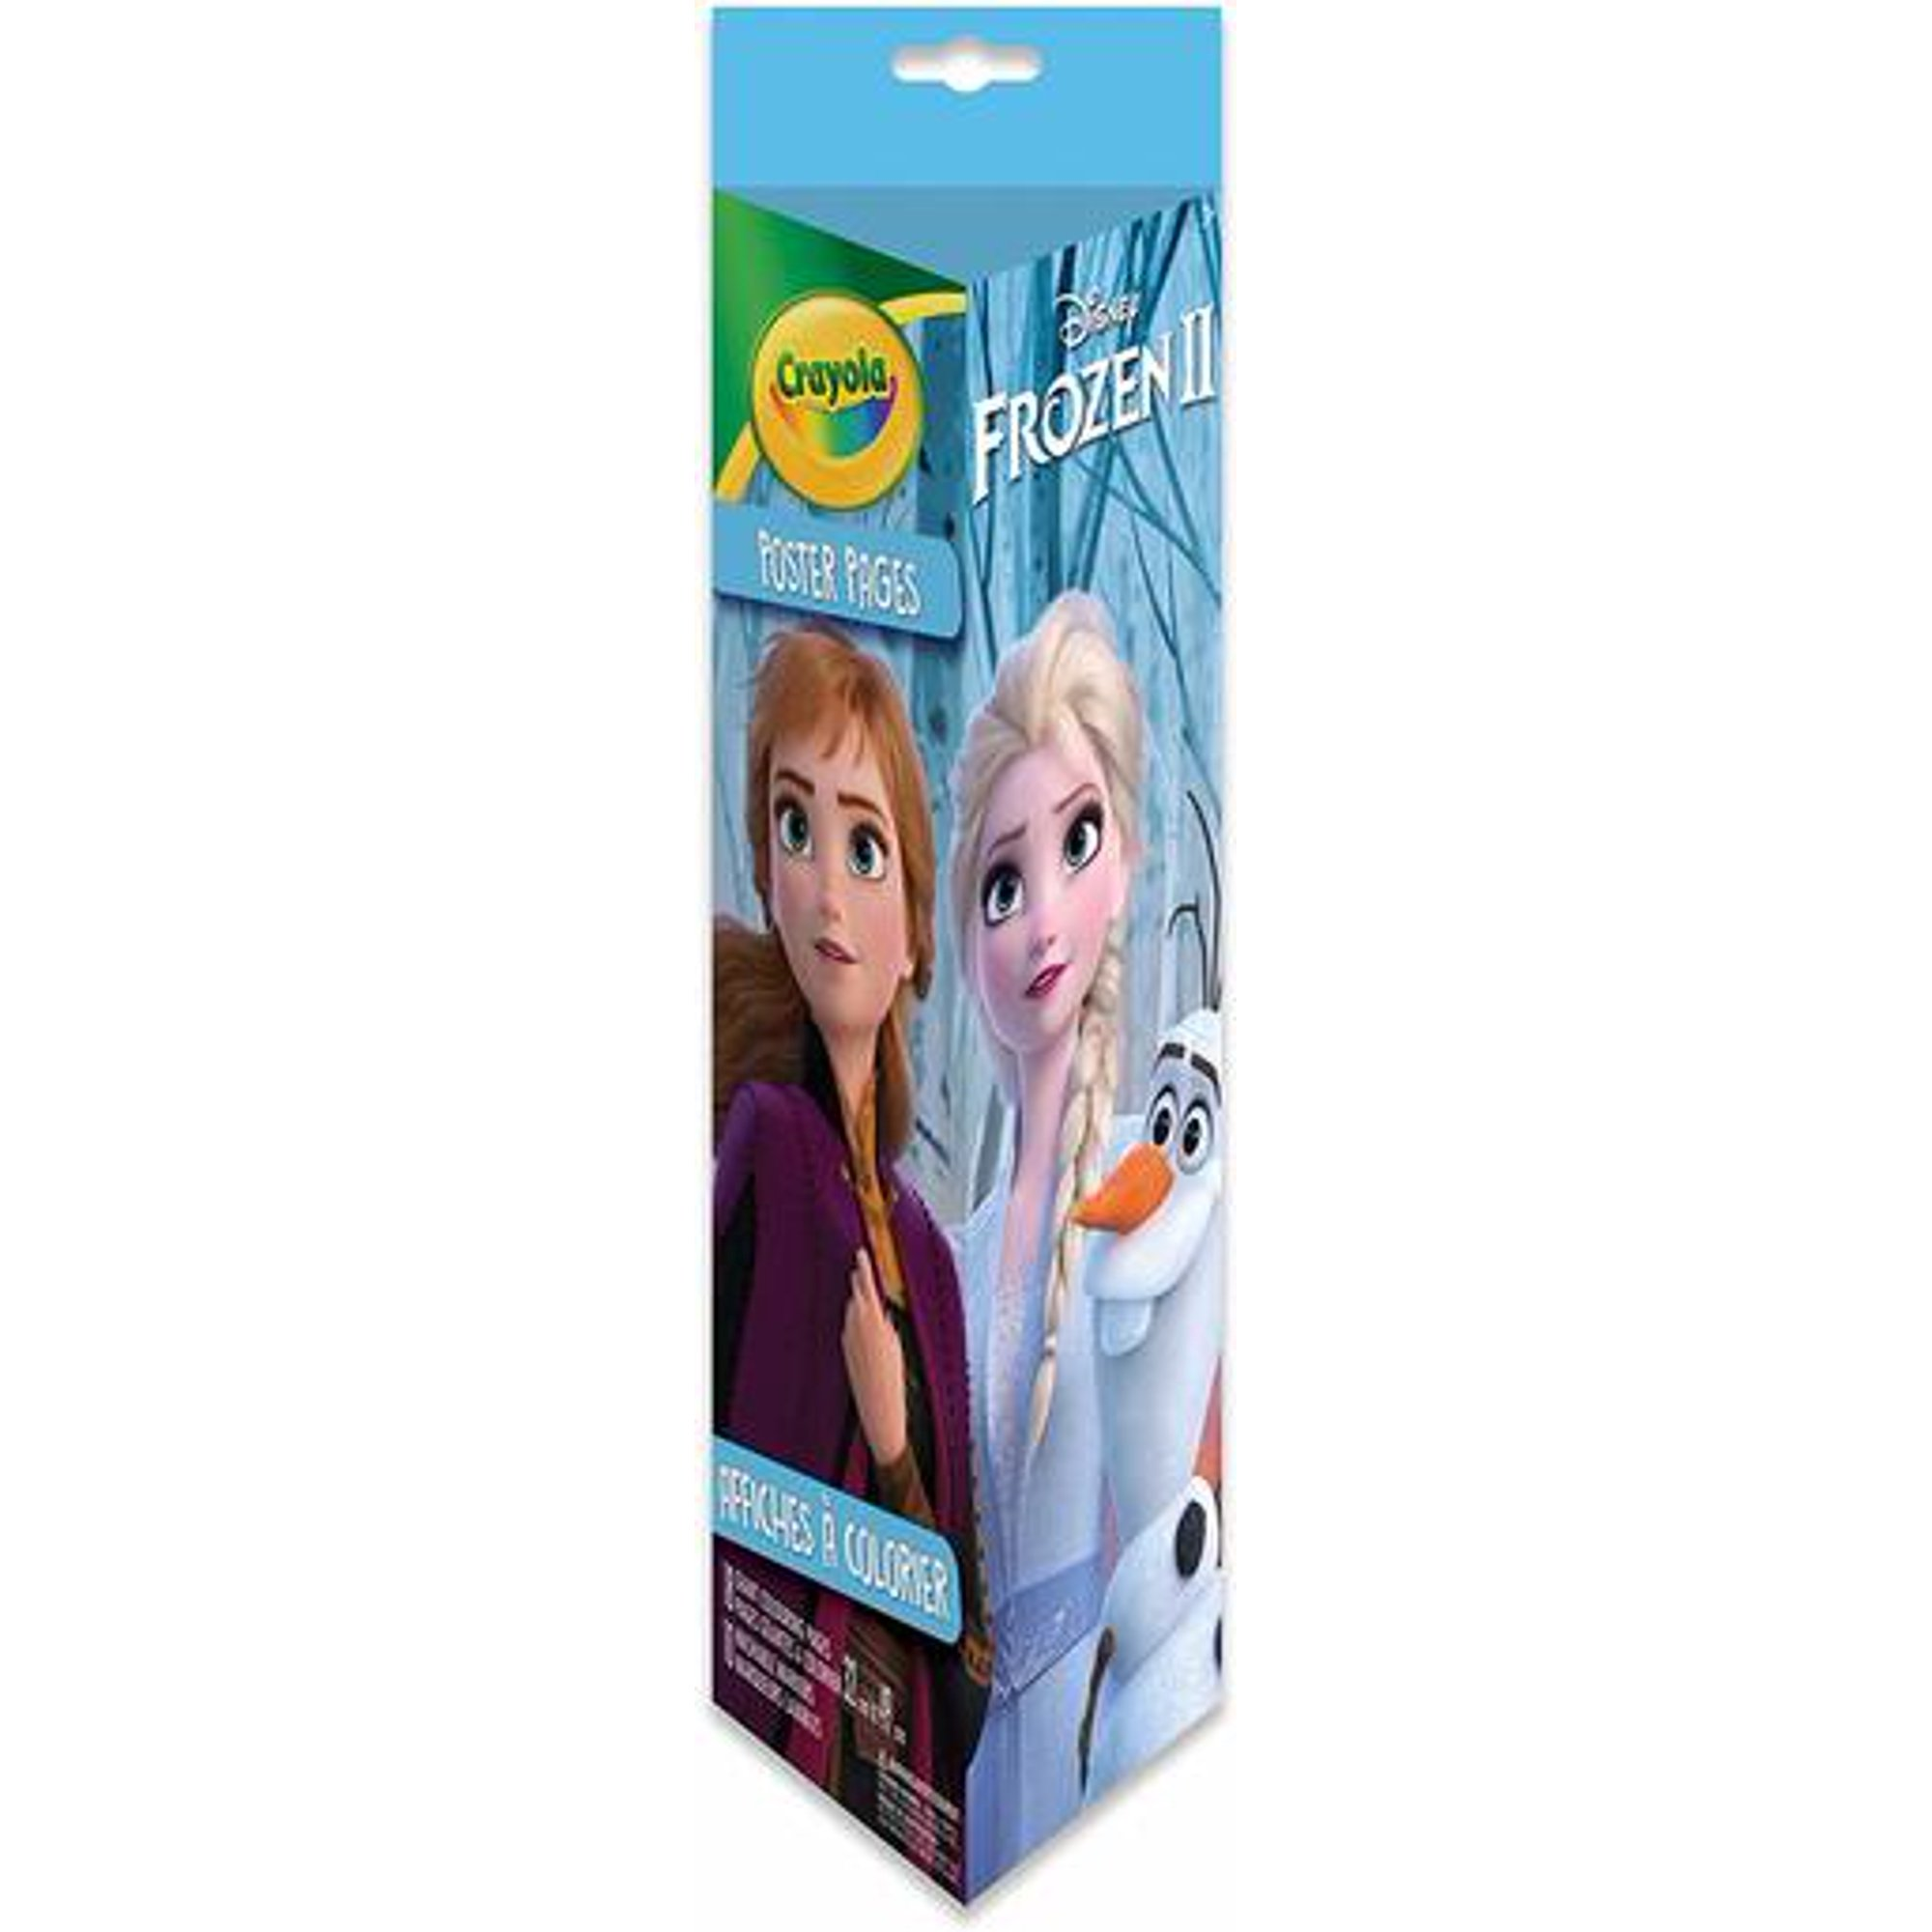 Crayola Disney Frozen Ii Poster Coloring Pages 18 Pages 10 Washable Markers 32 Cm X 49 Cm Walmart Canada